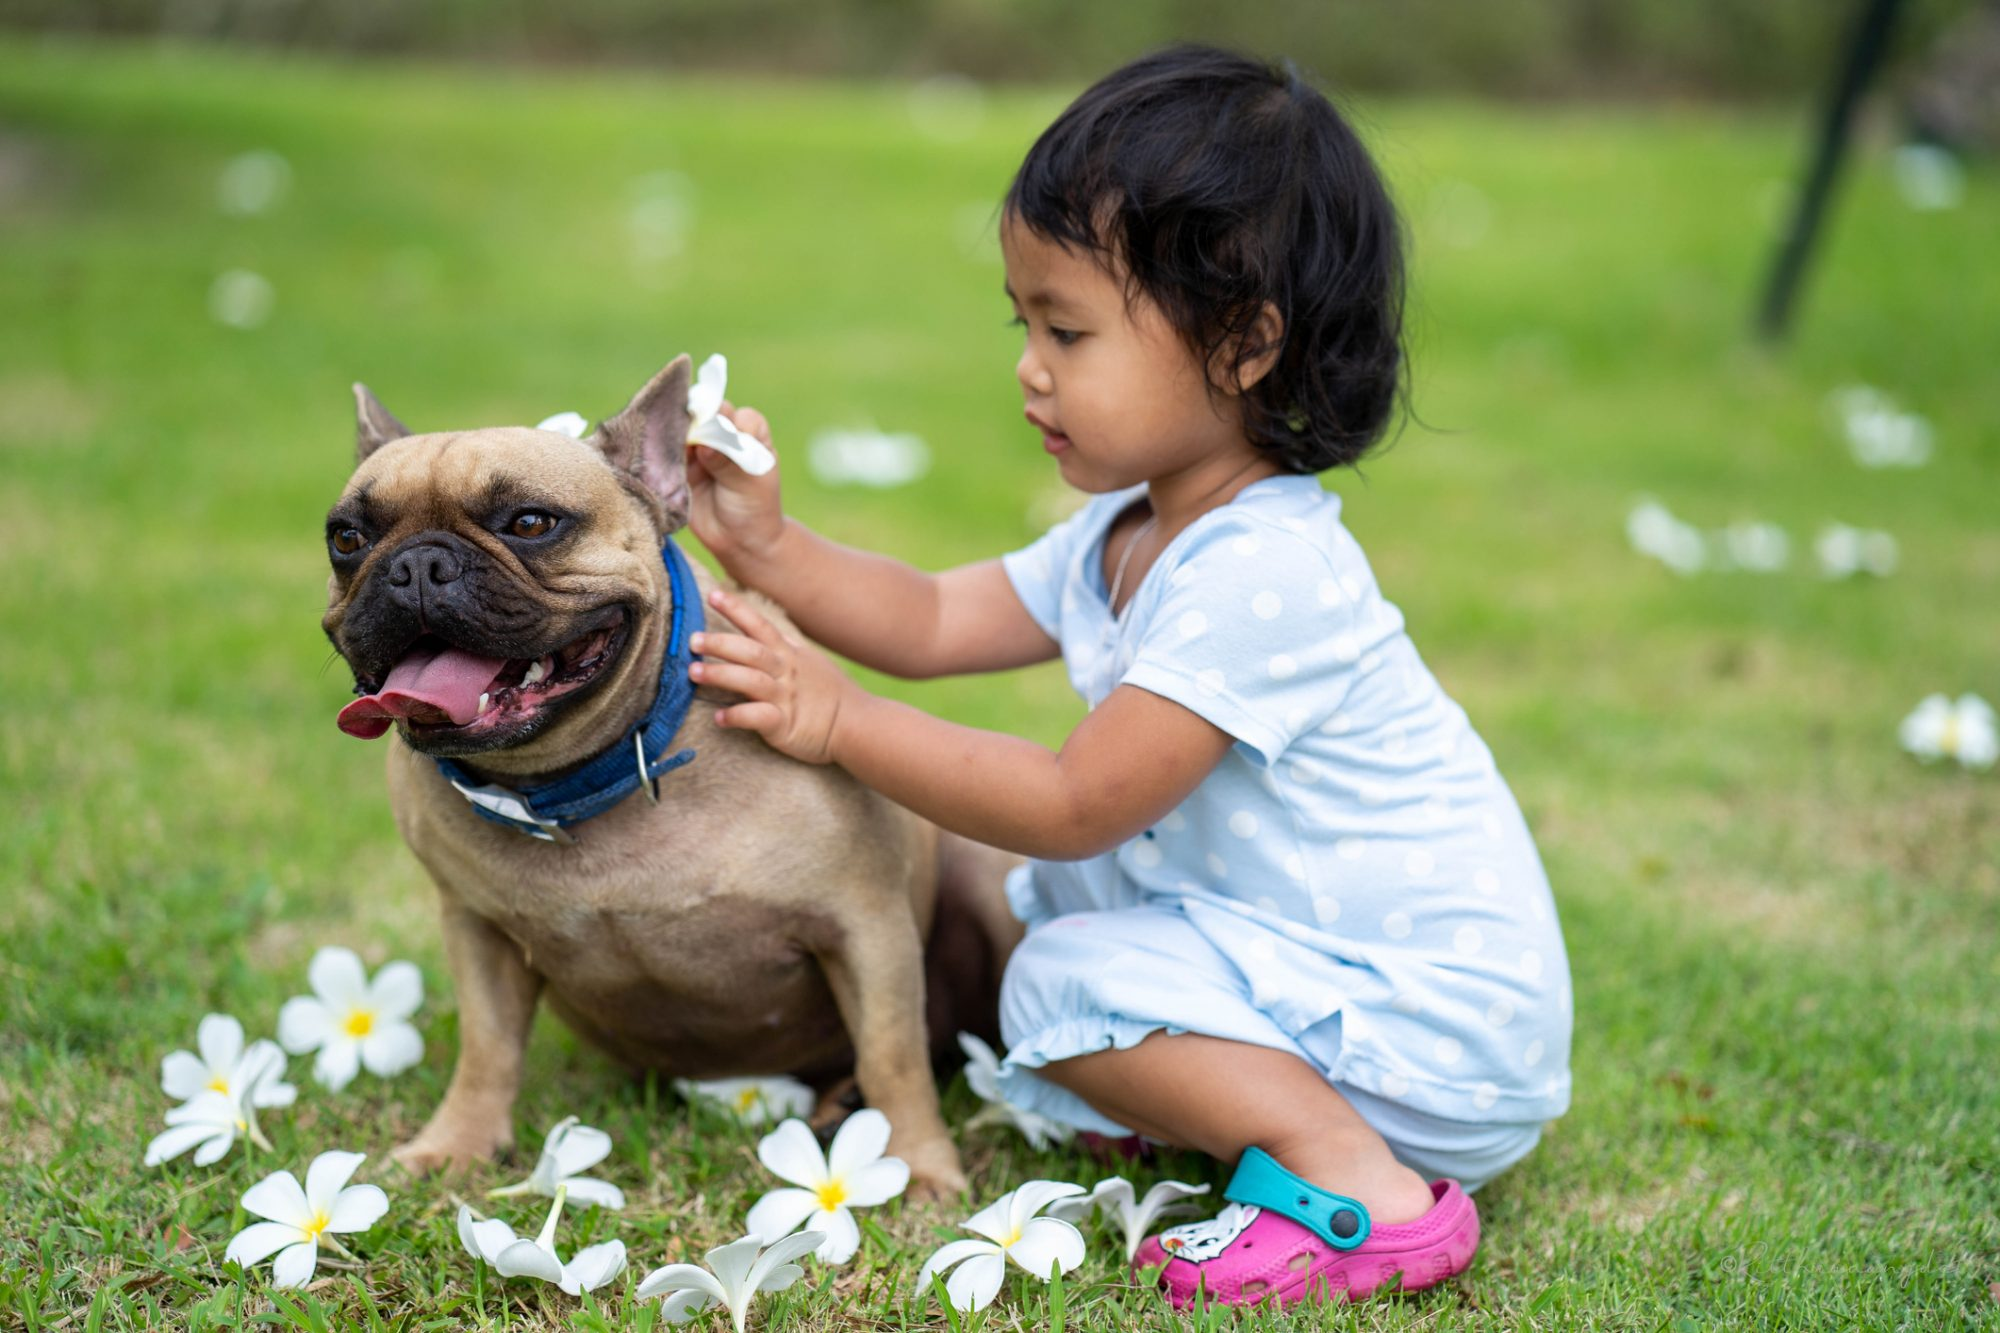 French Bulldog and Young Girl Playing with Flowers